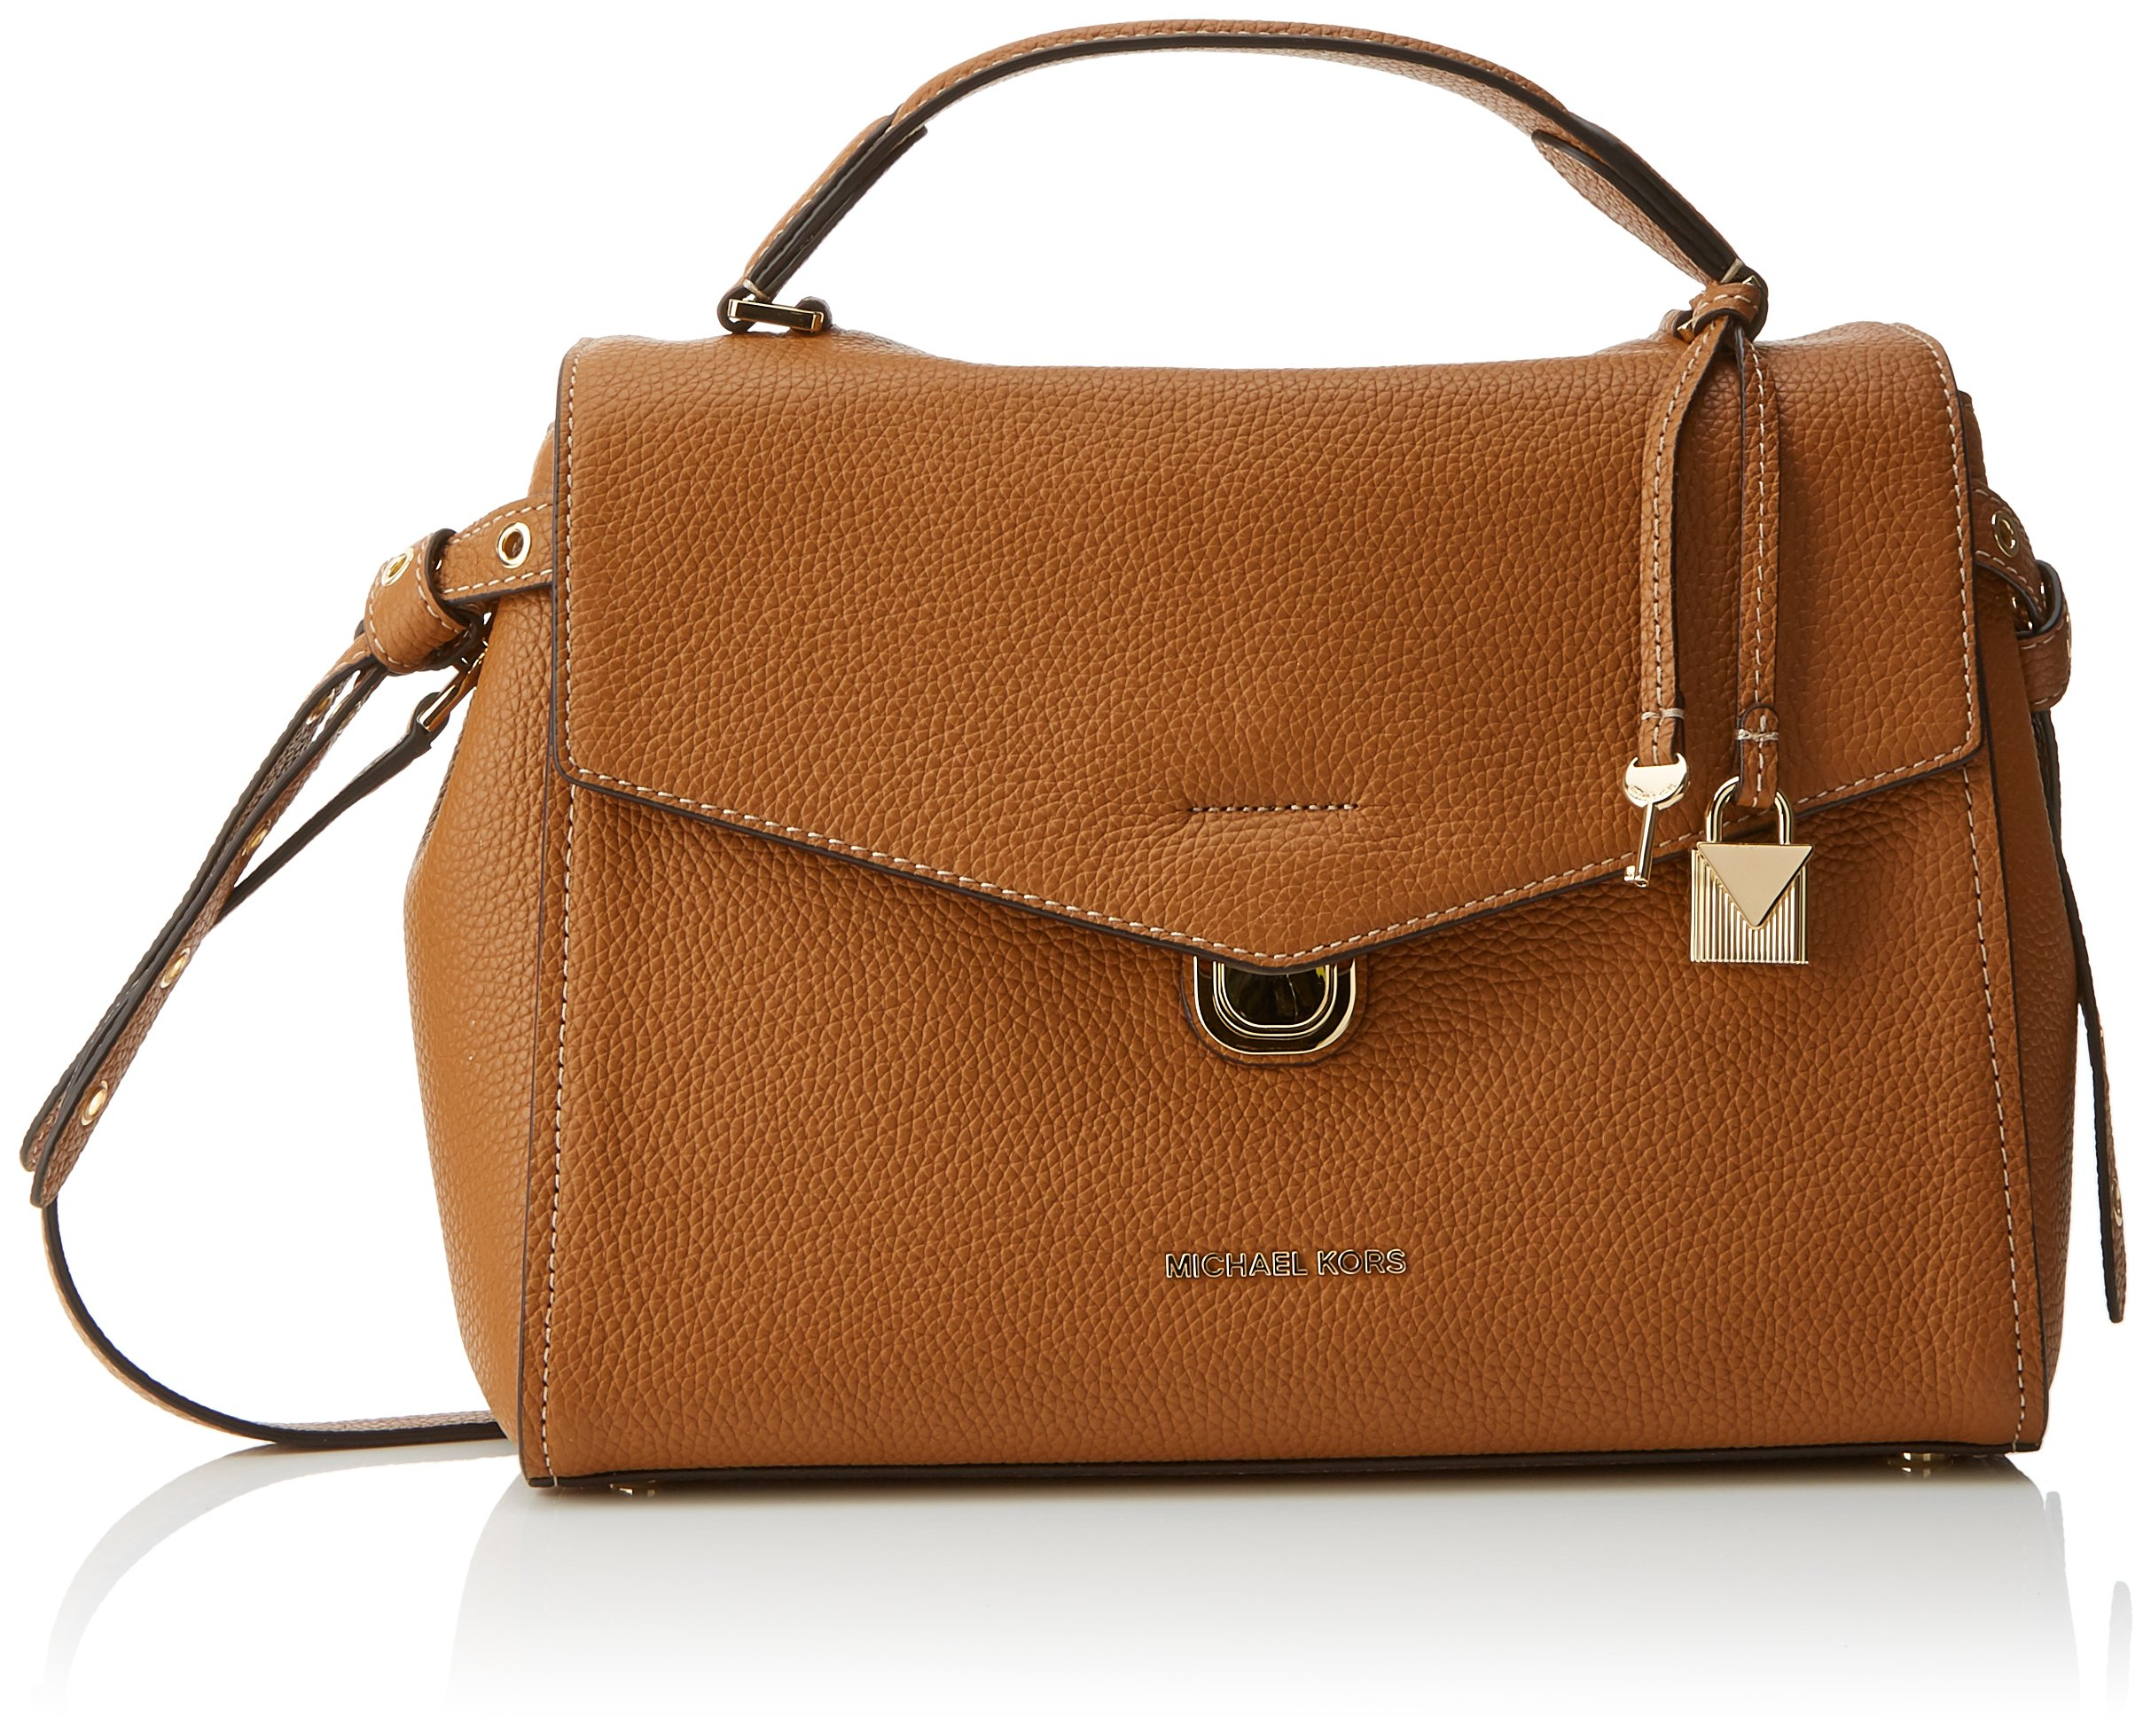 michael kors crossbody bags amazon co uk rh amazon co uk